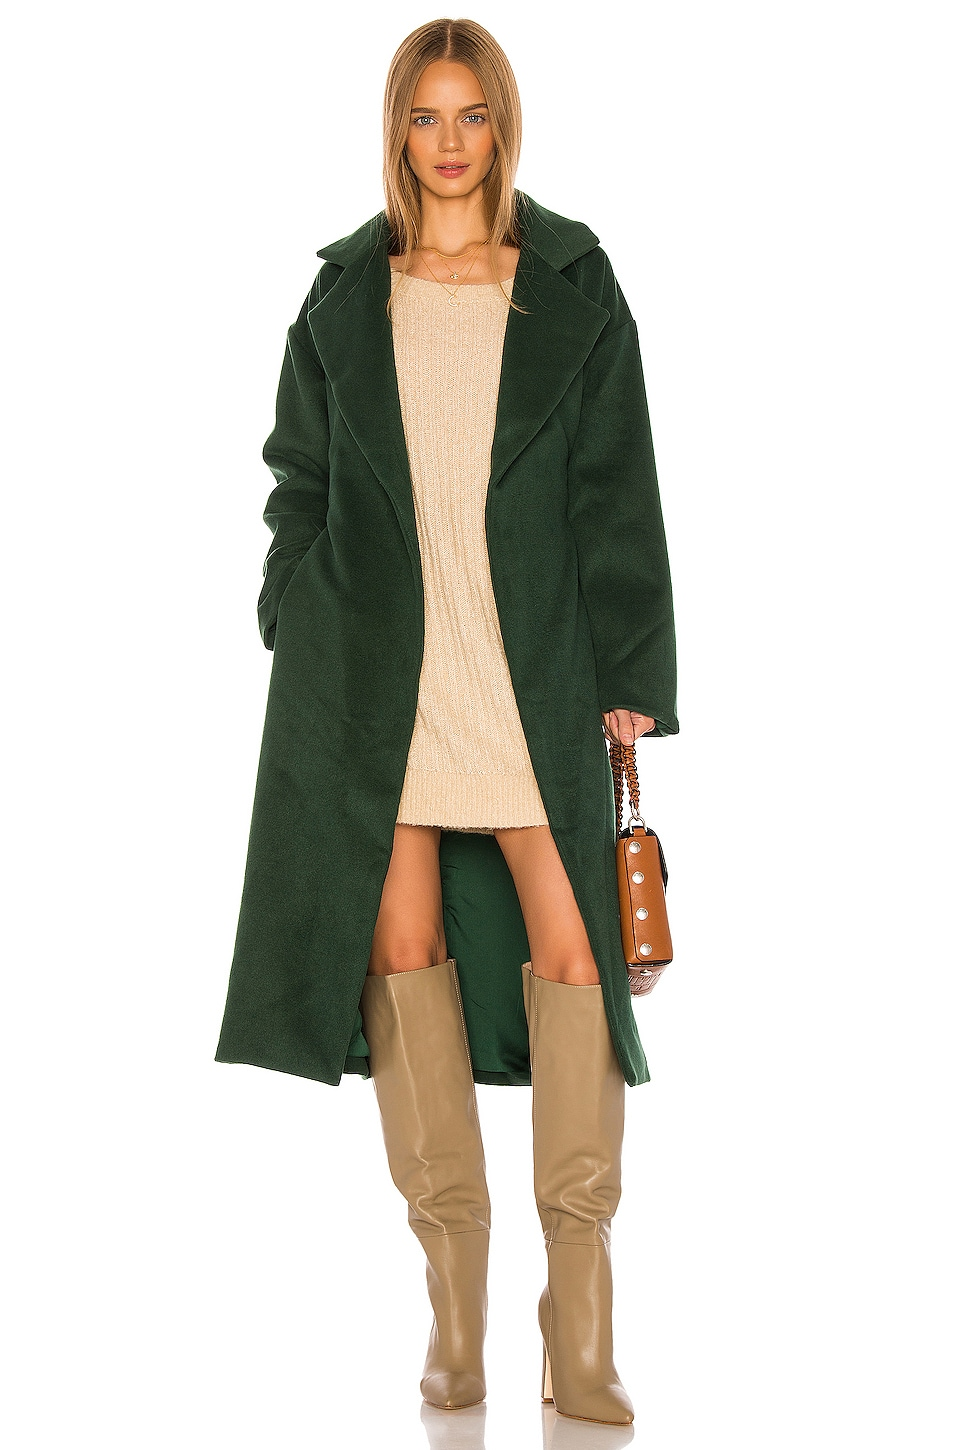 Song of Style Eloise Coat in Juniper Green